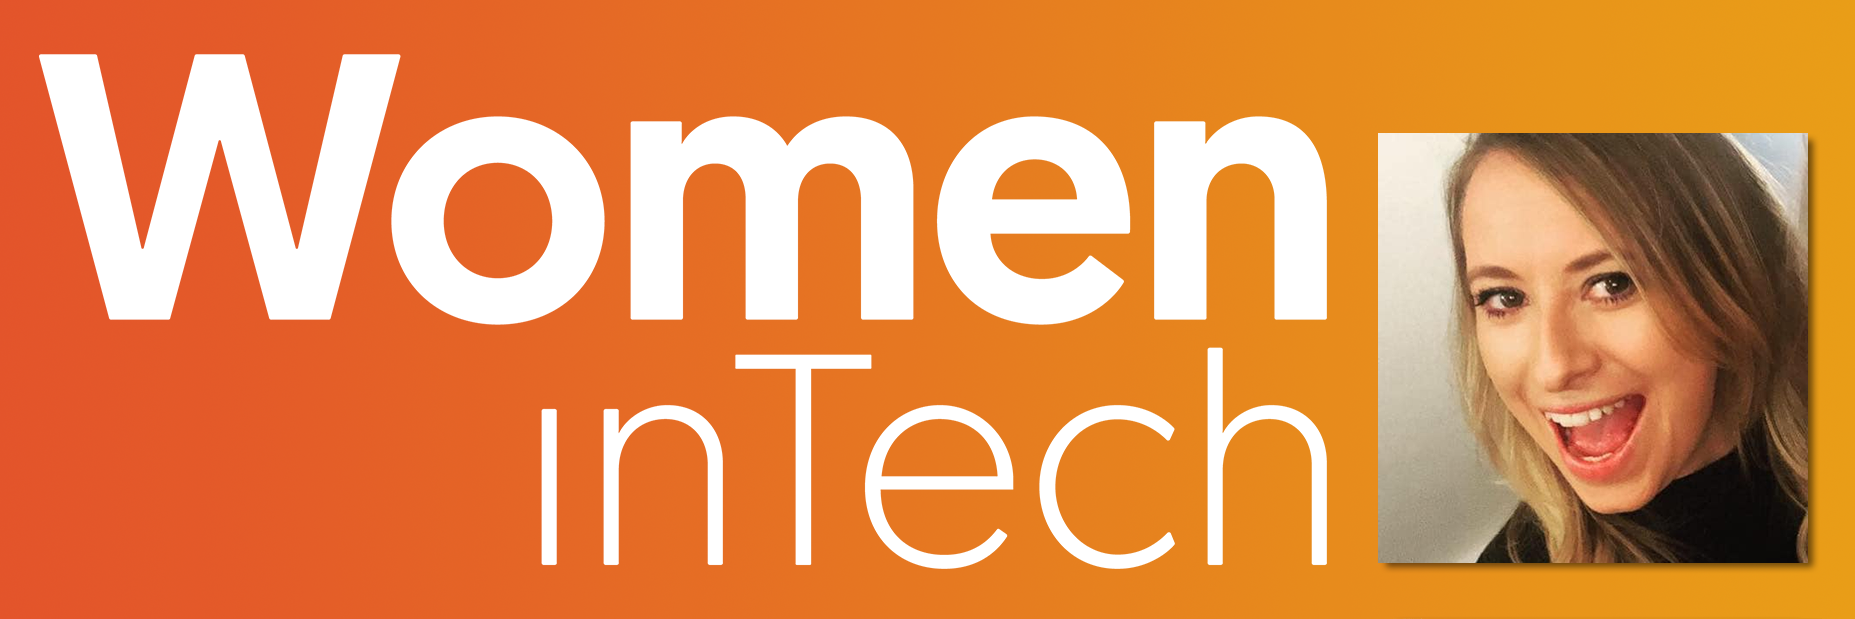 Women in Tech logo (white) on an orange gradient background, with an image of Samantha Cohen